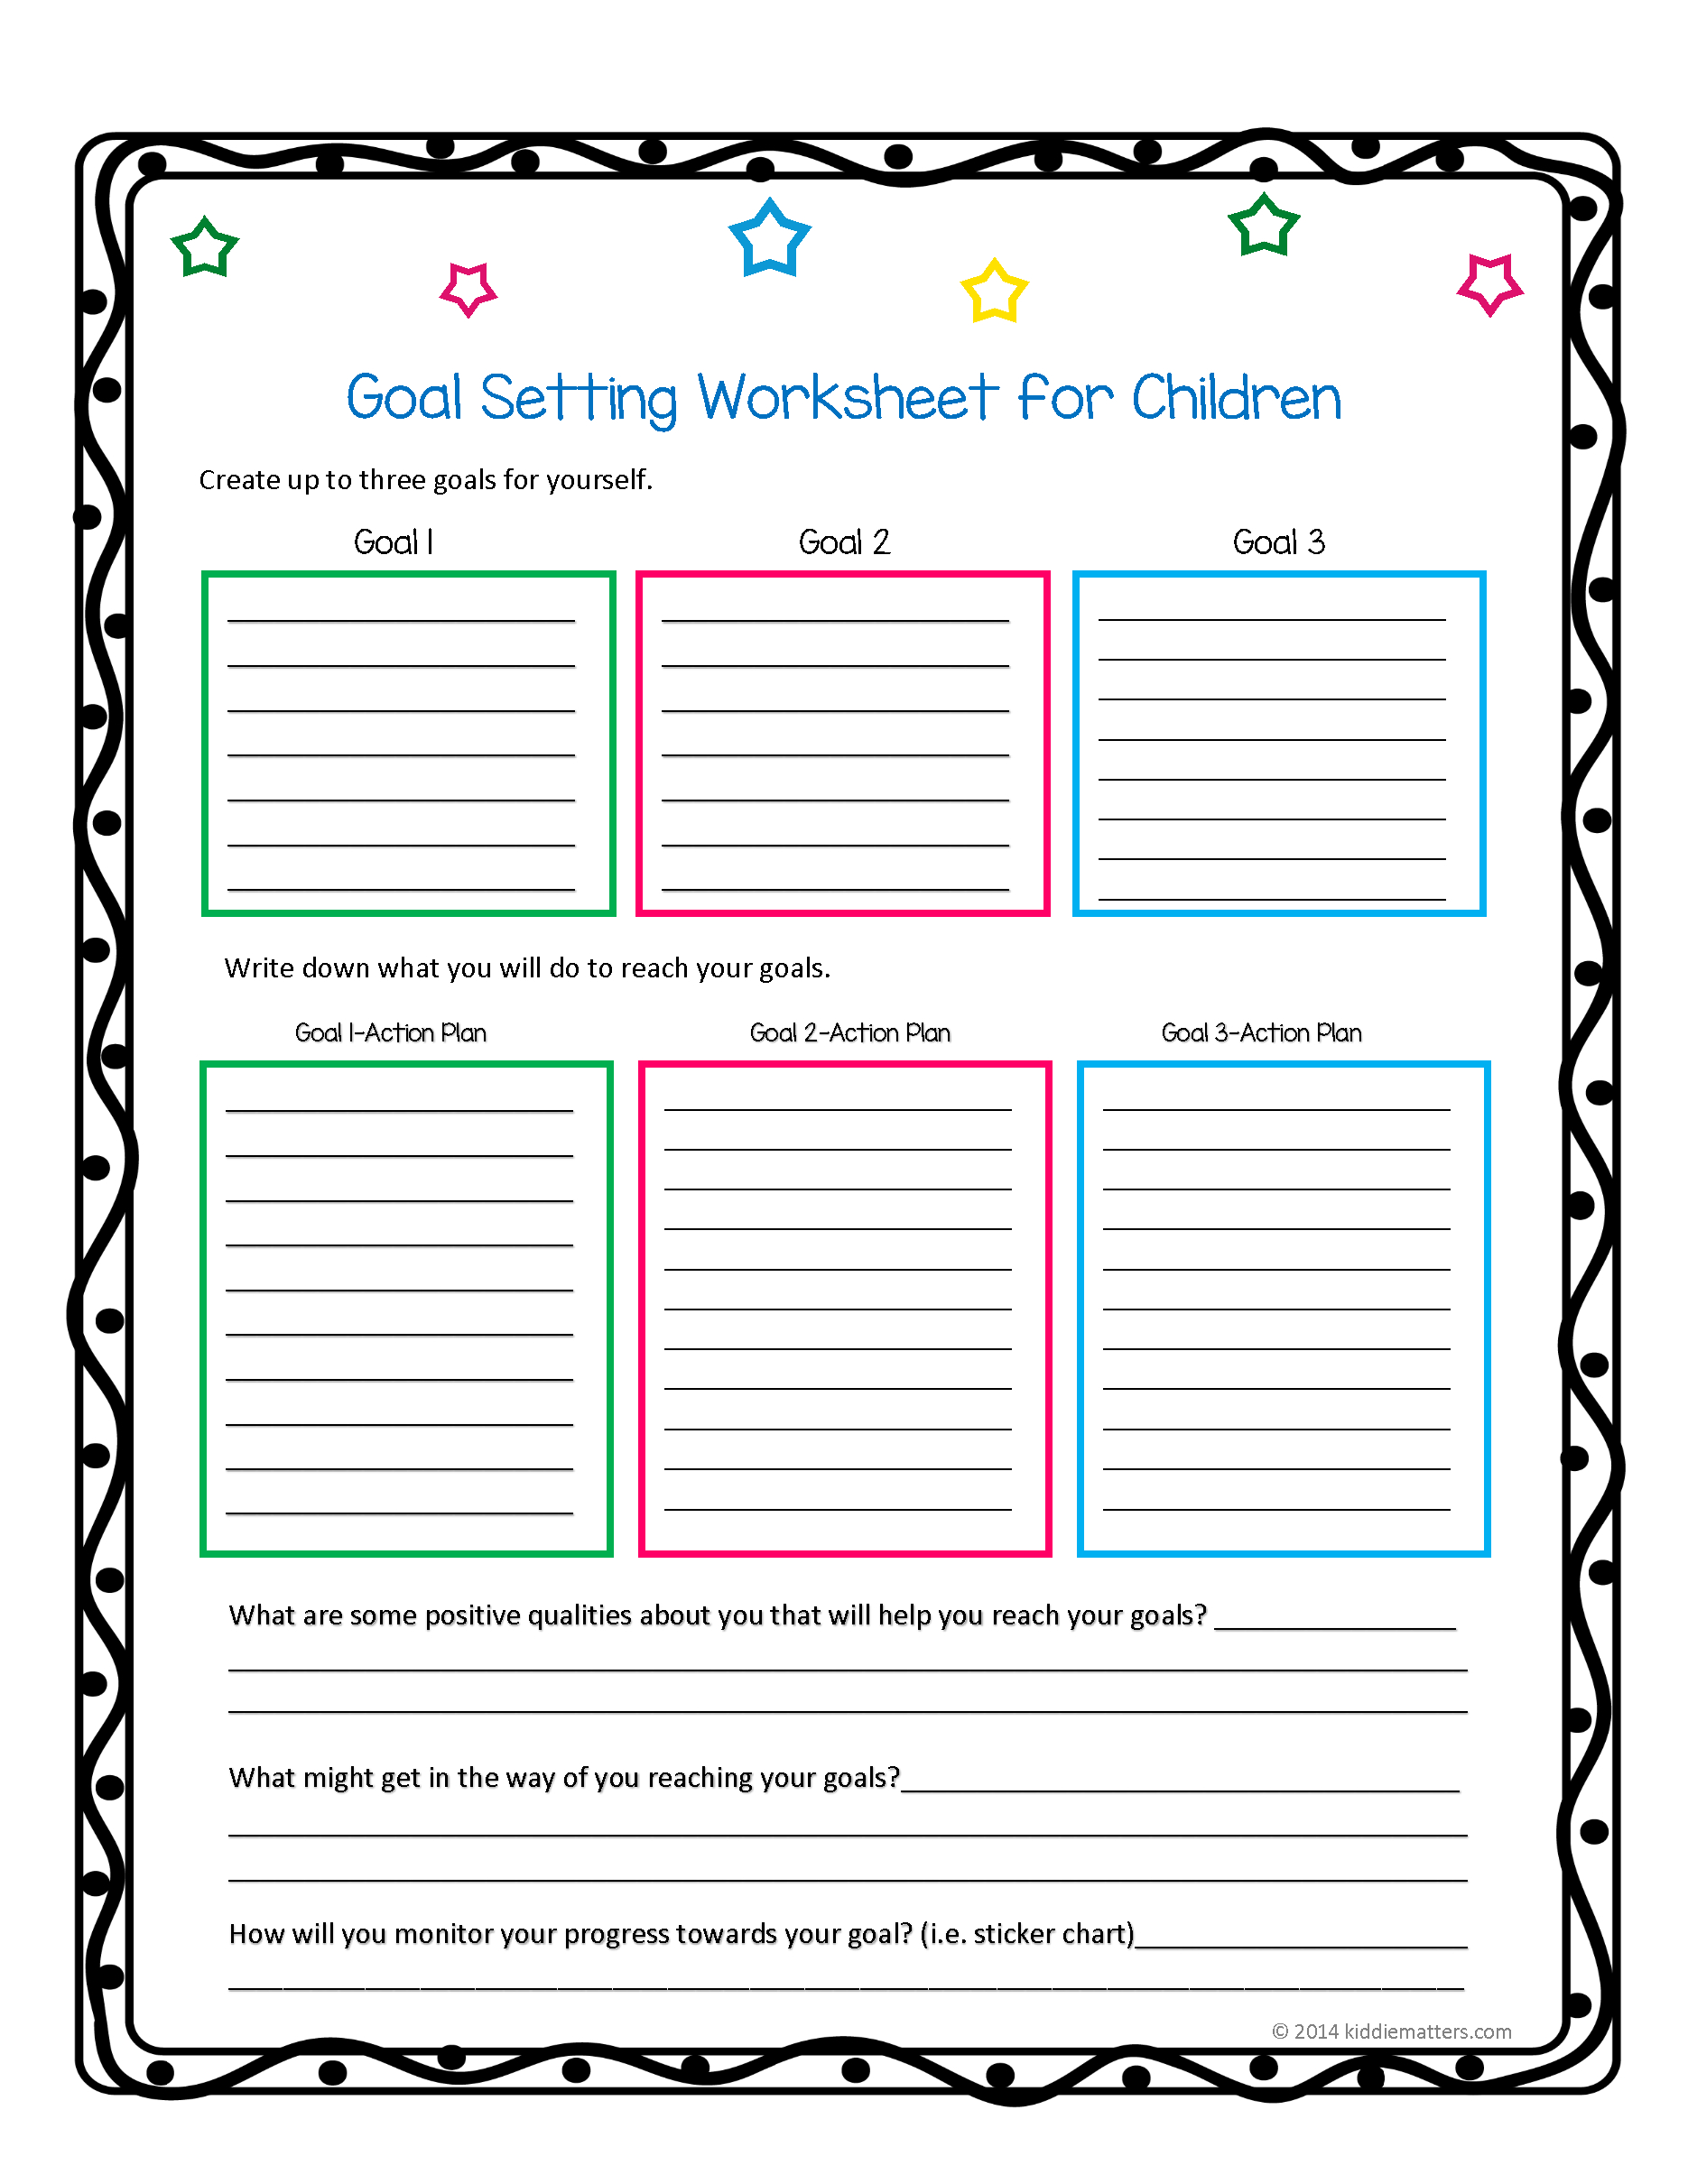 This Worksheet And Free Printable Helps Children Learn How To Set - Free Printable Life Skills Worksheets For Adults